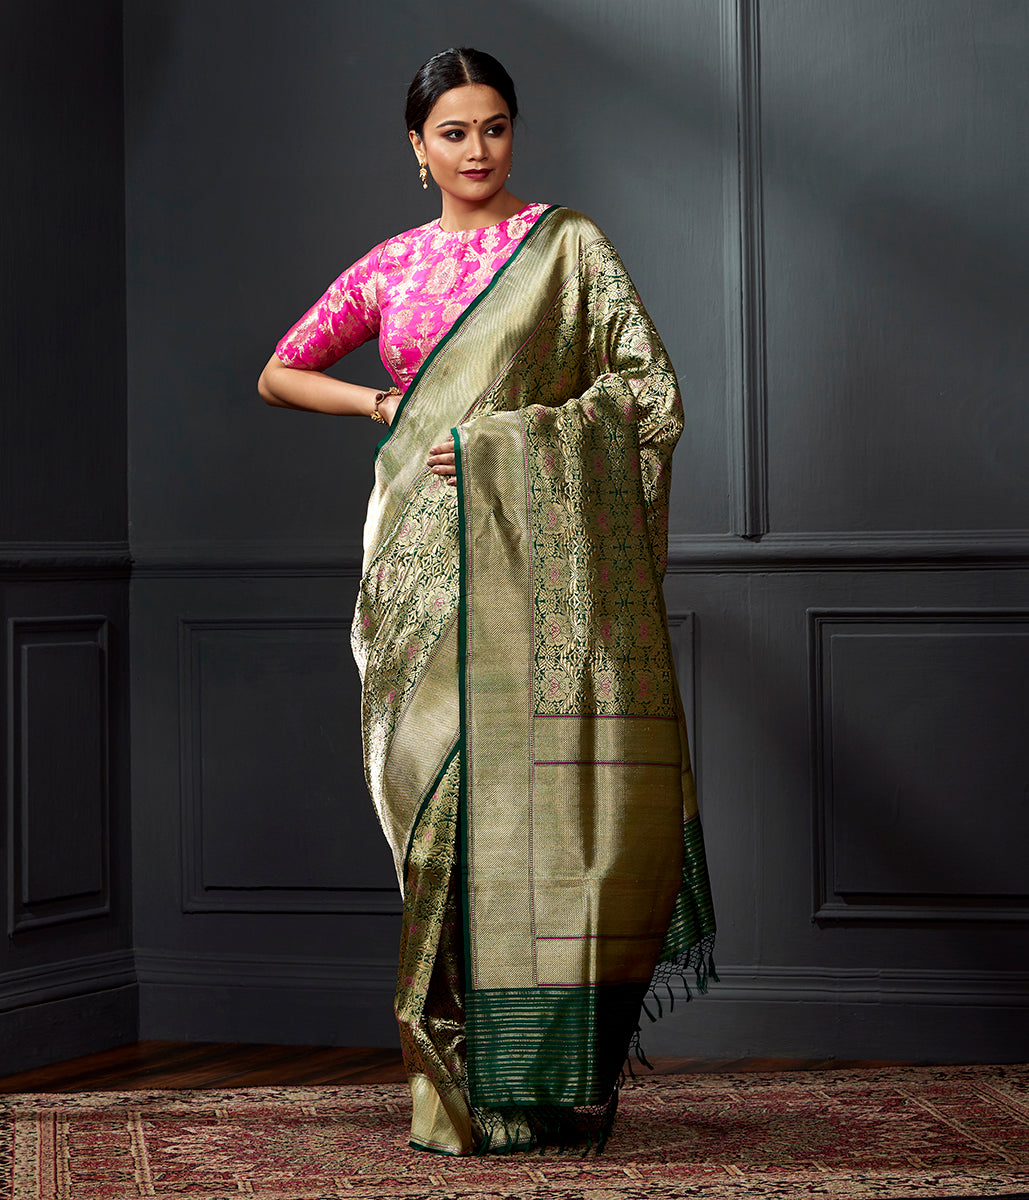 Handwoven Banarasi Brocade Jangla in Emerald Green